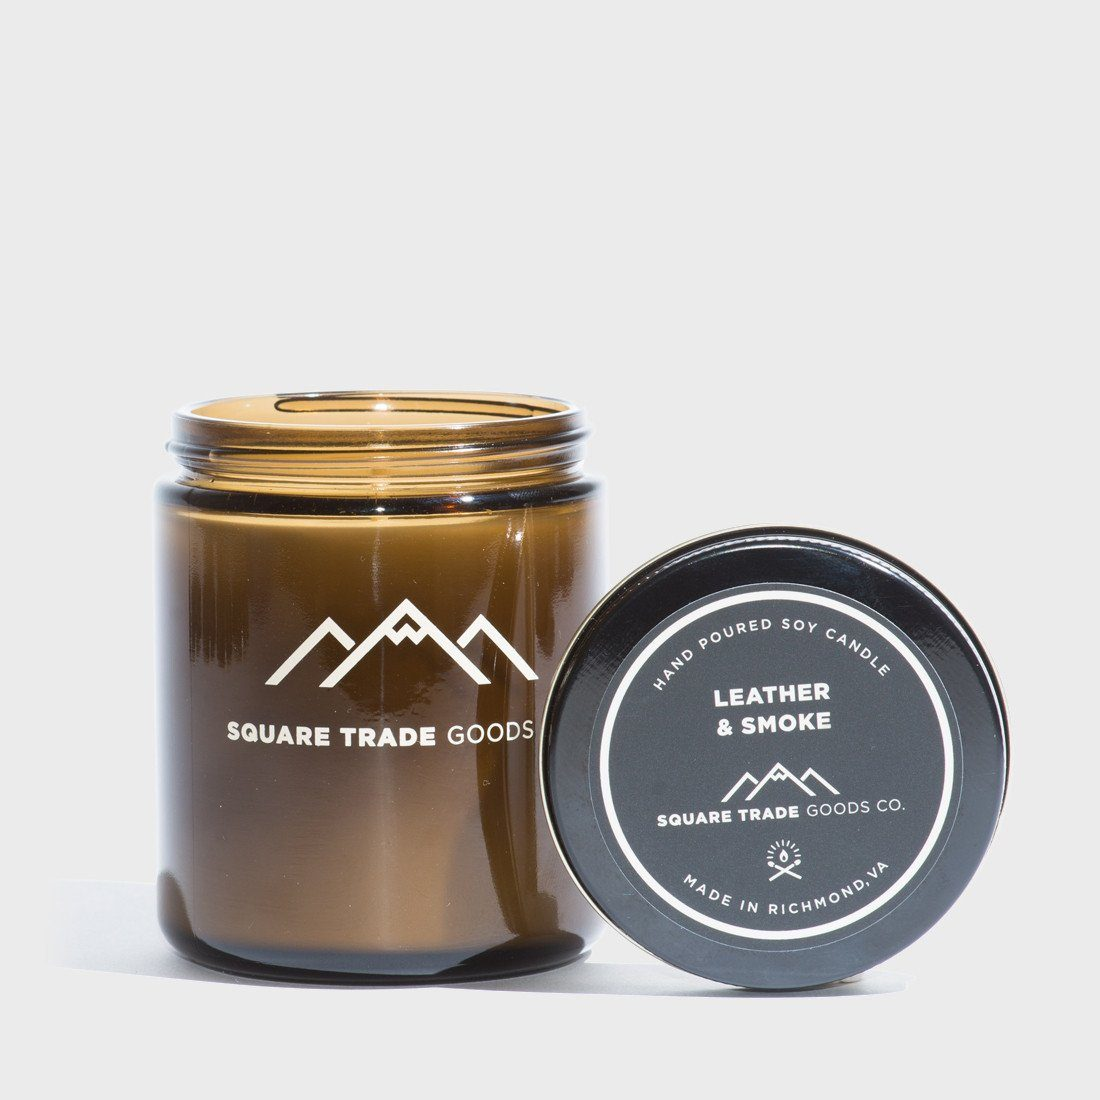 Square Trade Goods Leather And Smoke 8 oz